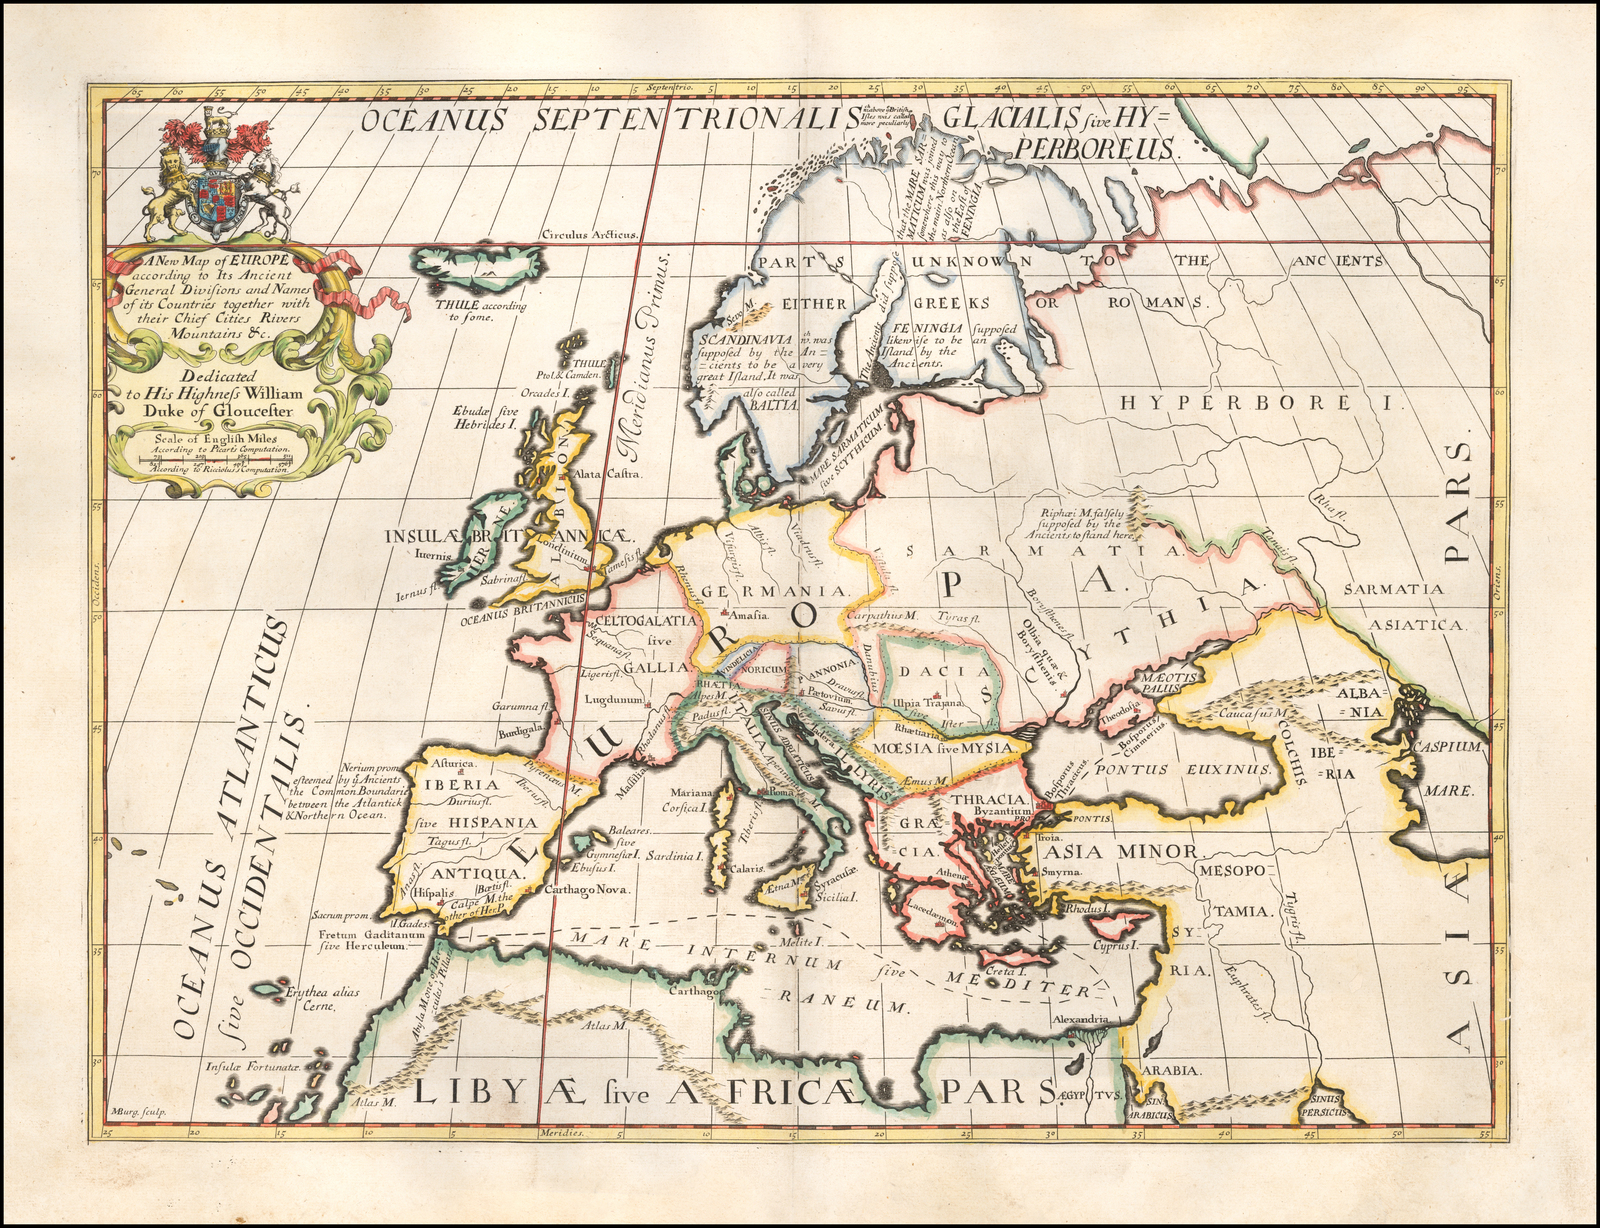 Picture of: A New Map Of Europe According To Its Ancient General Divisions And Names Capital Cities Chief Rivers Mountains C Dedicated To His Highness William Duke Of Glocester Barry Lawrence Ruderman Antique Maps Inc